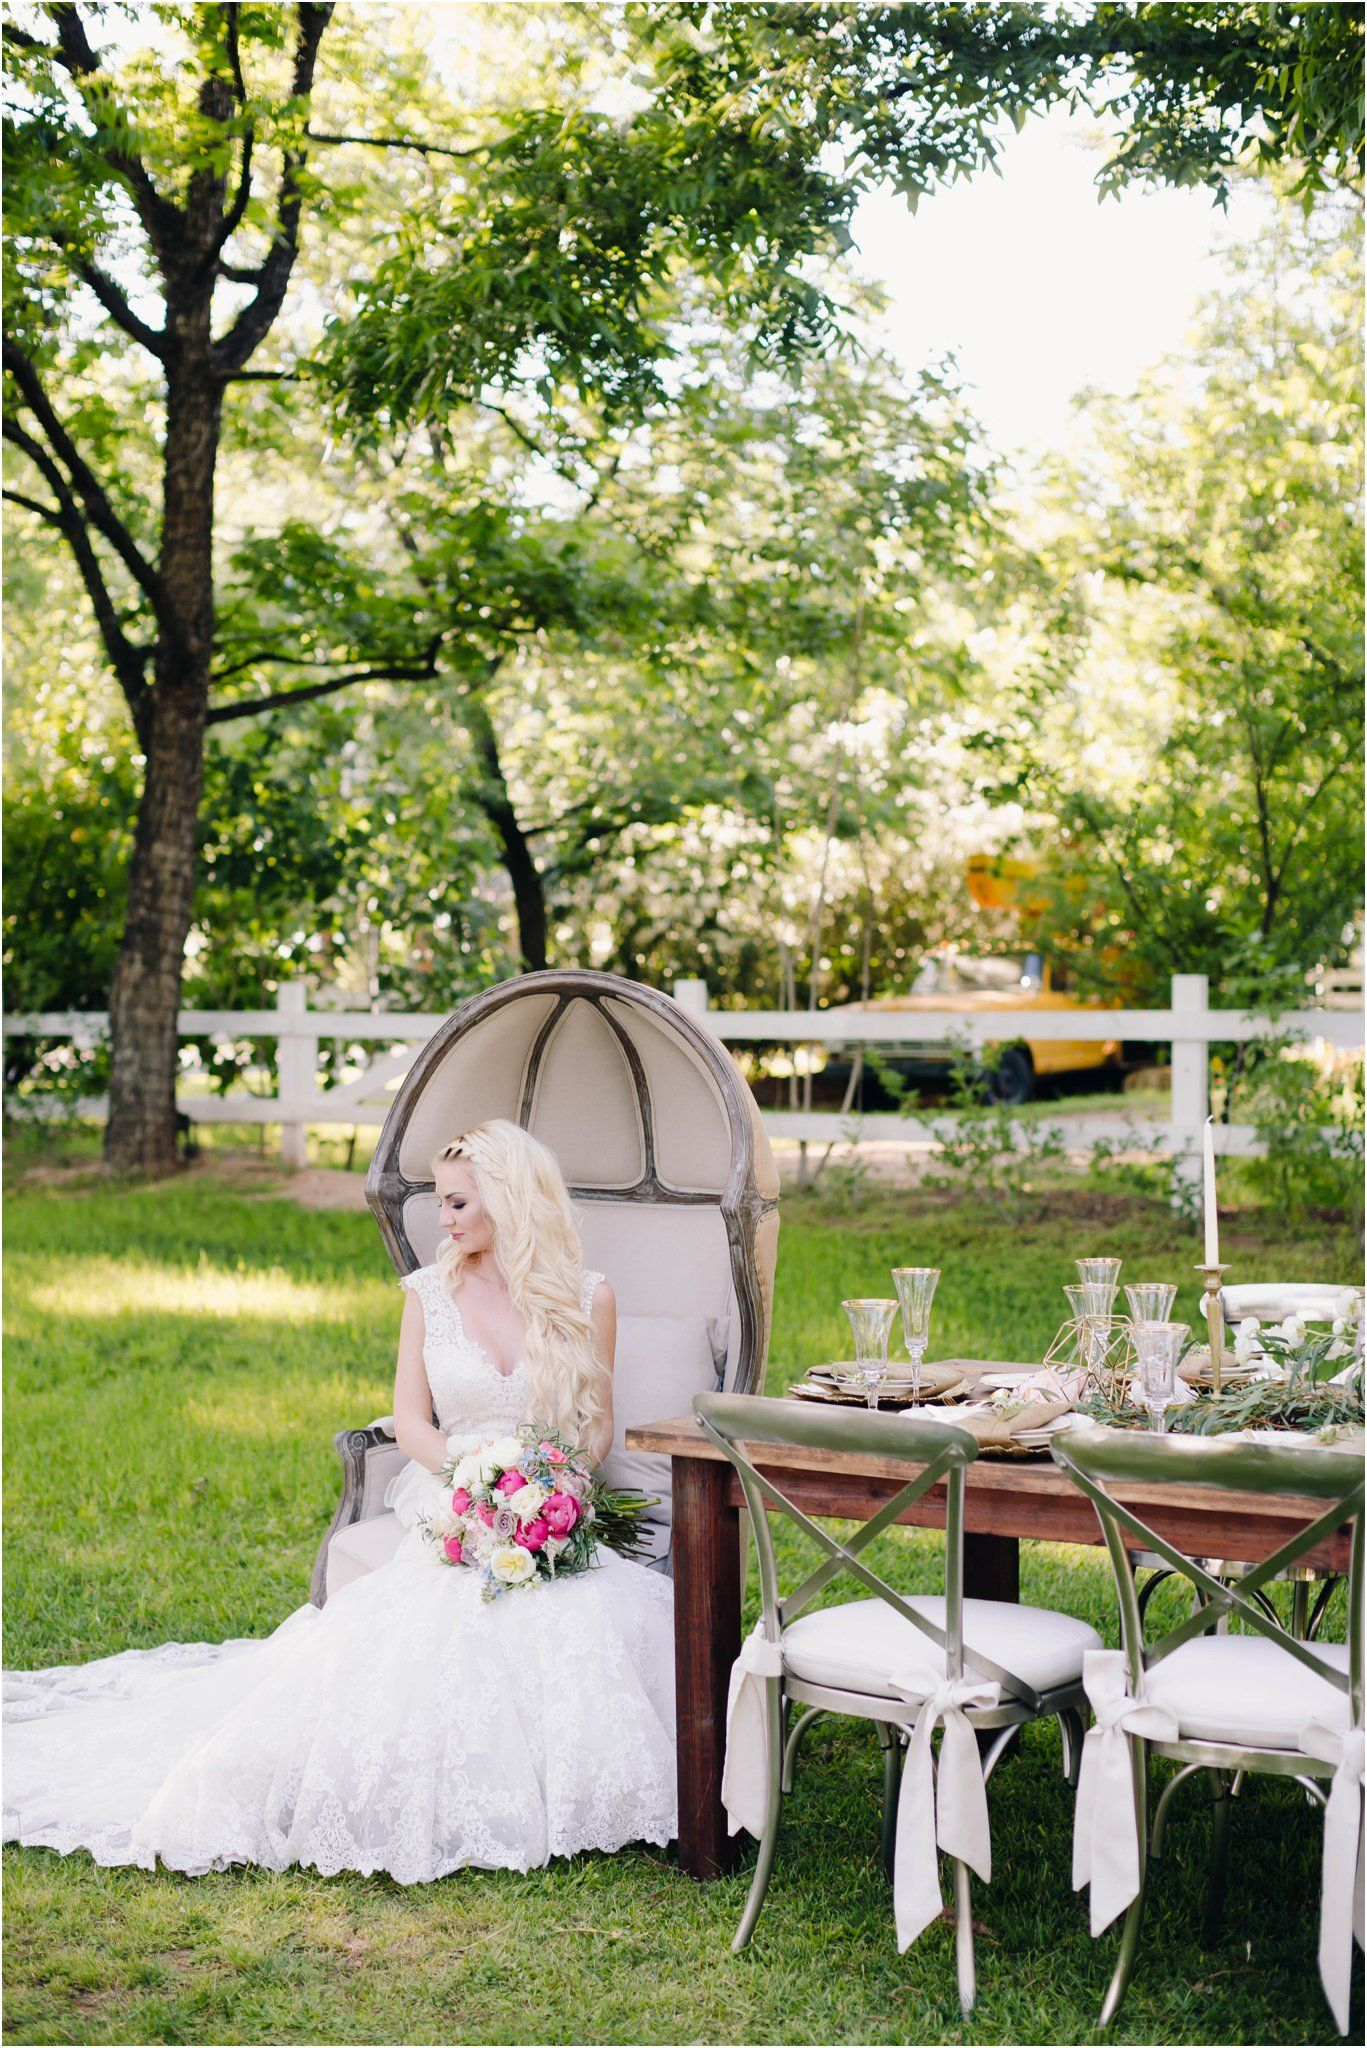 Garden party inspiration  Elegant and Whimsical Garden Wedding Inspiration at the Venue at the